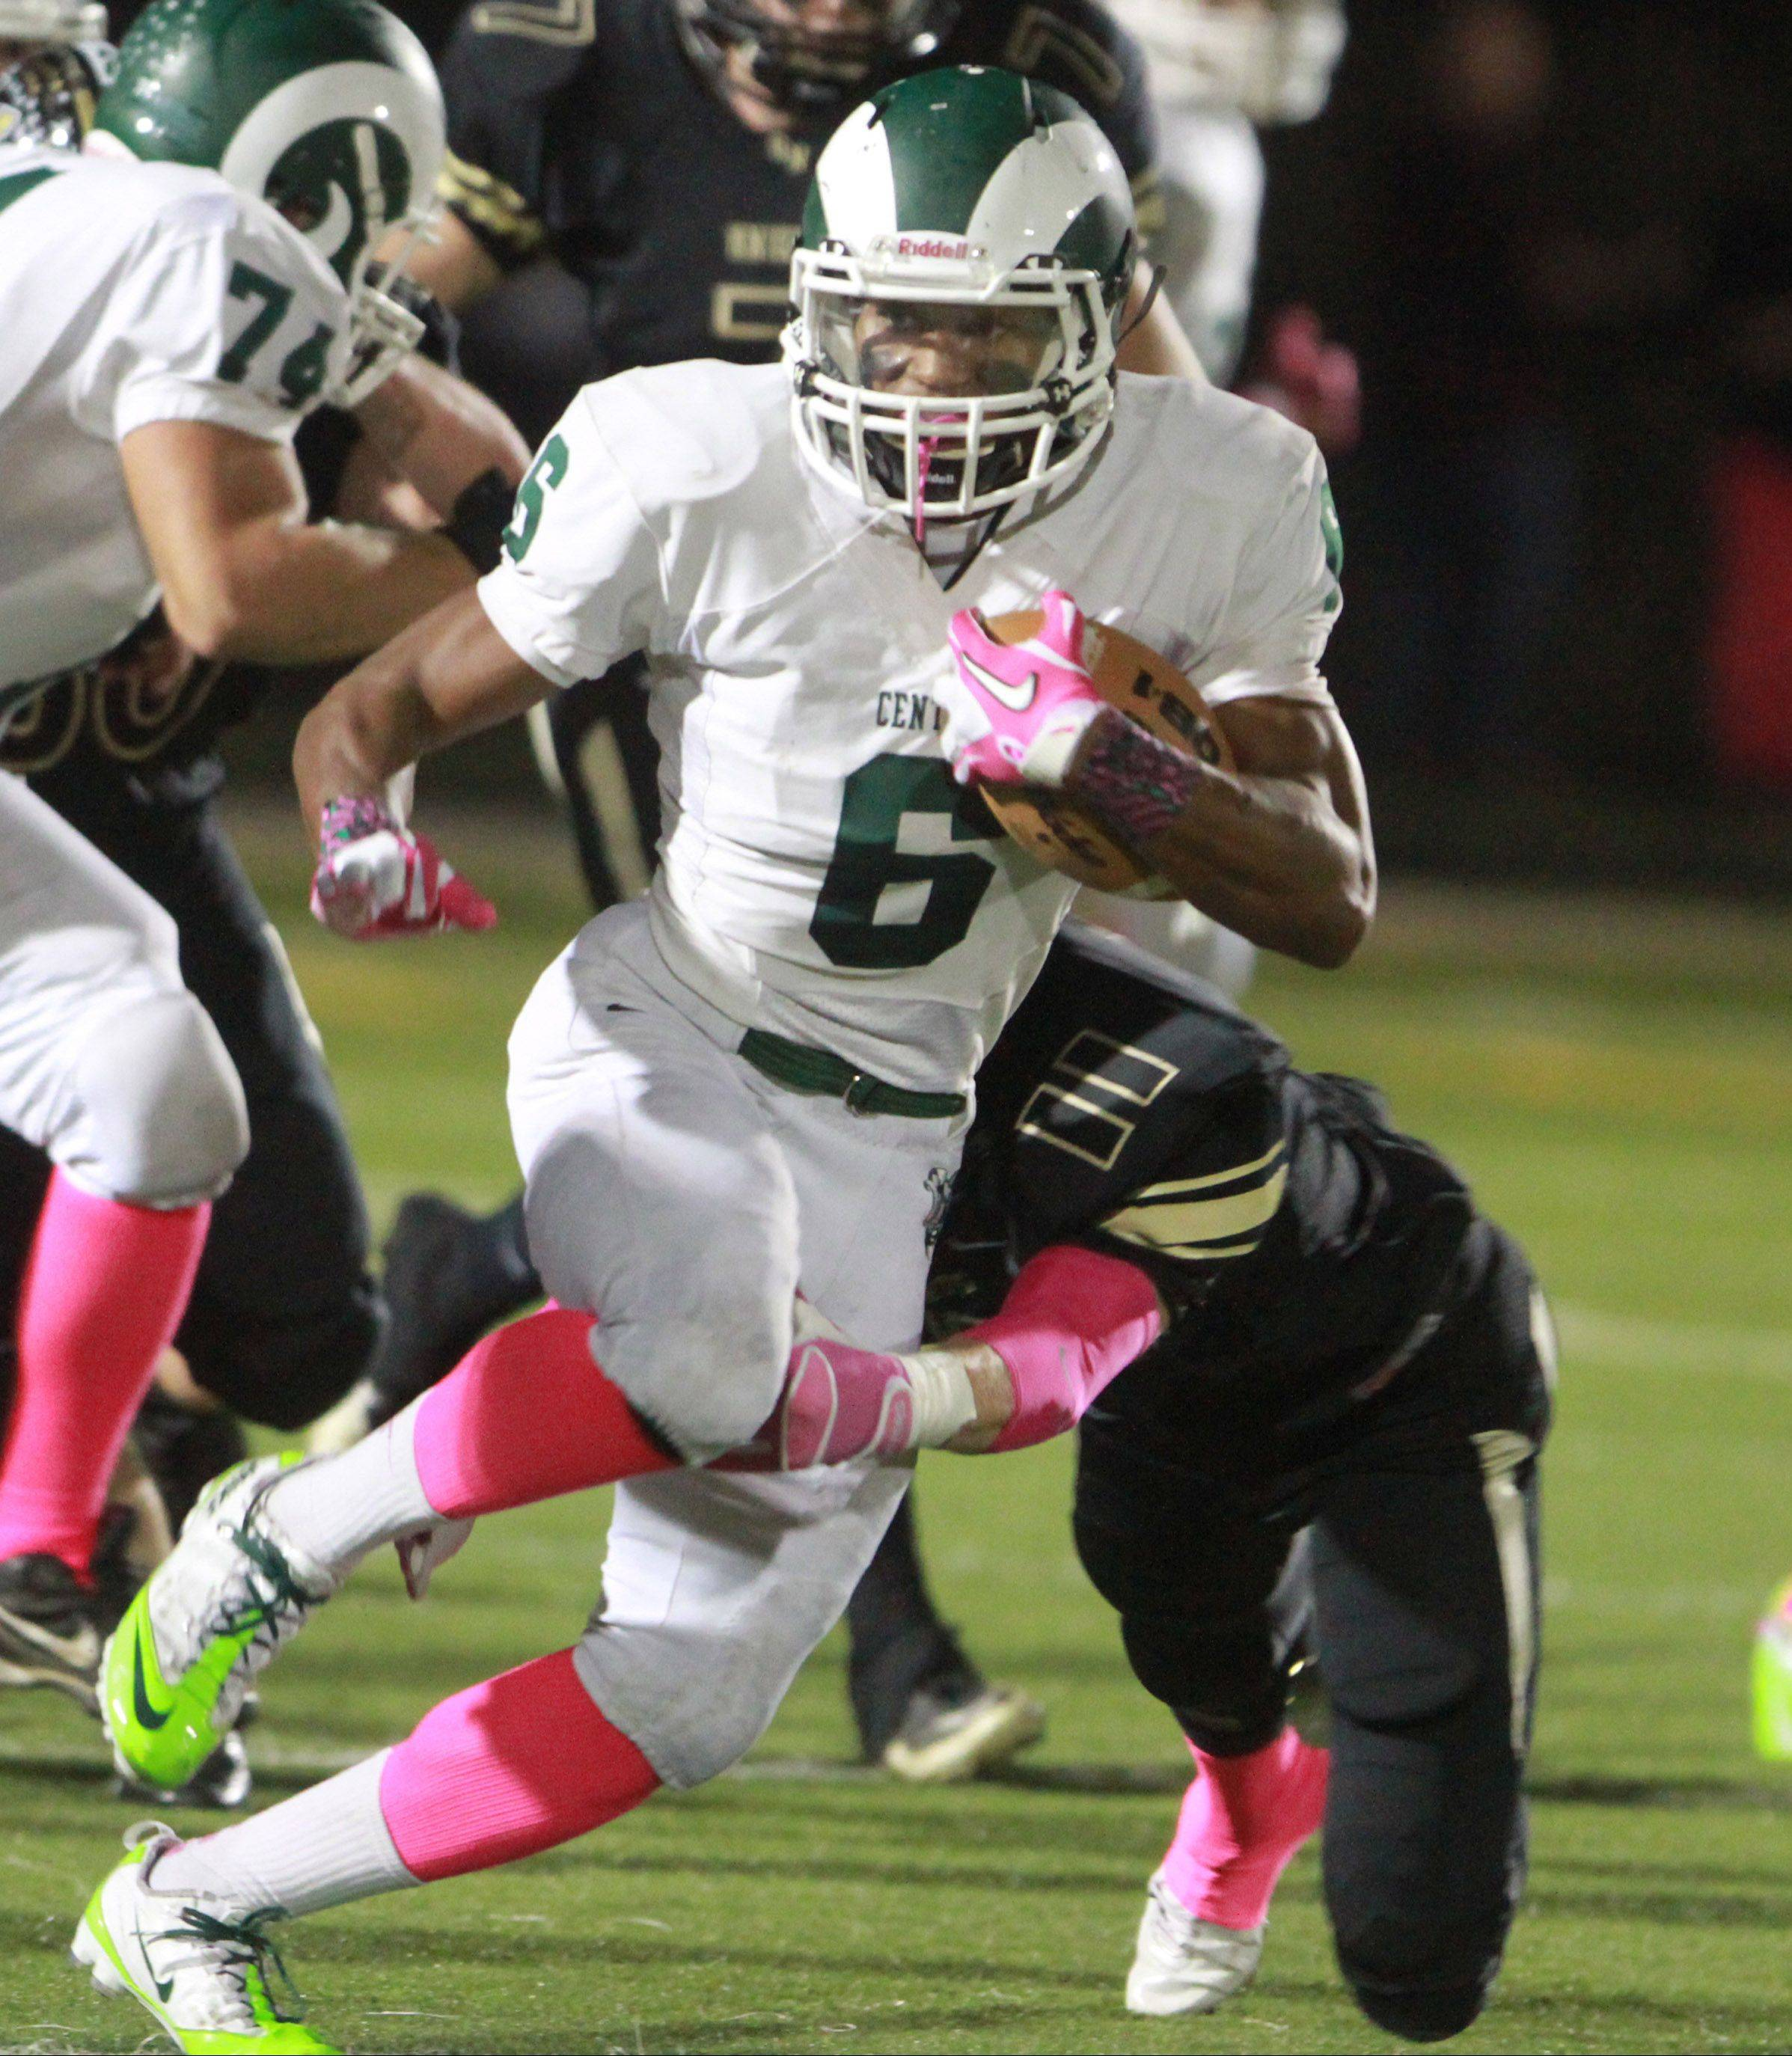 Grayslake Central's Malcolm Reed picks up yardage at Grayslake North on Friday.